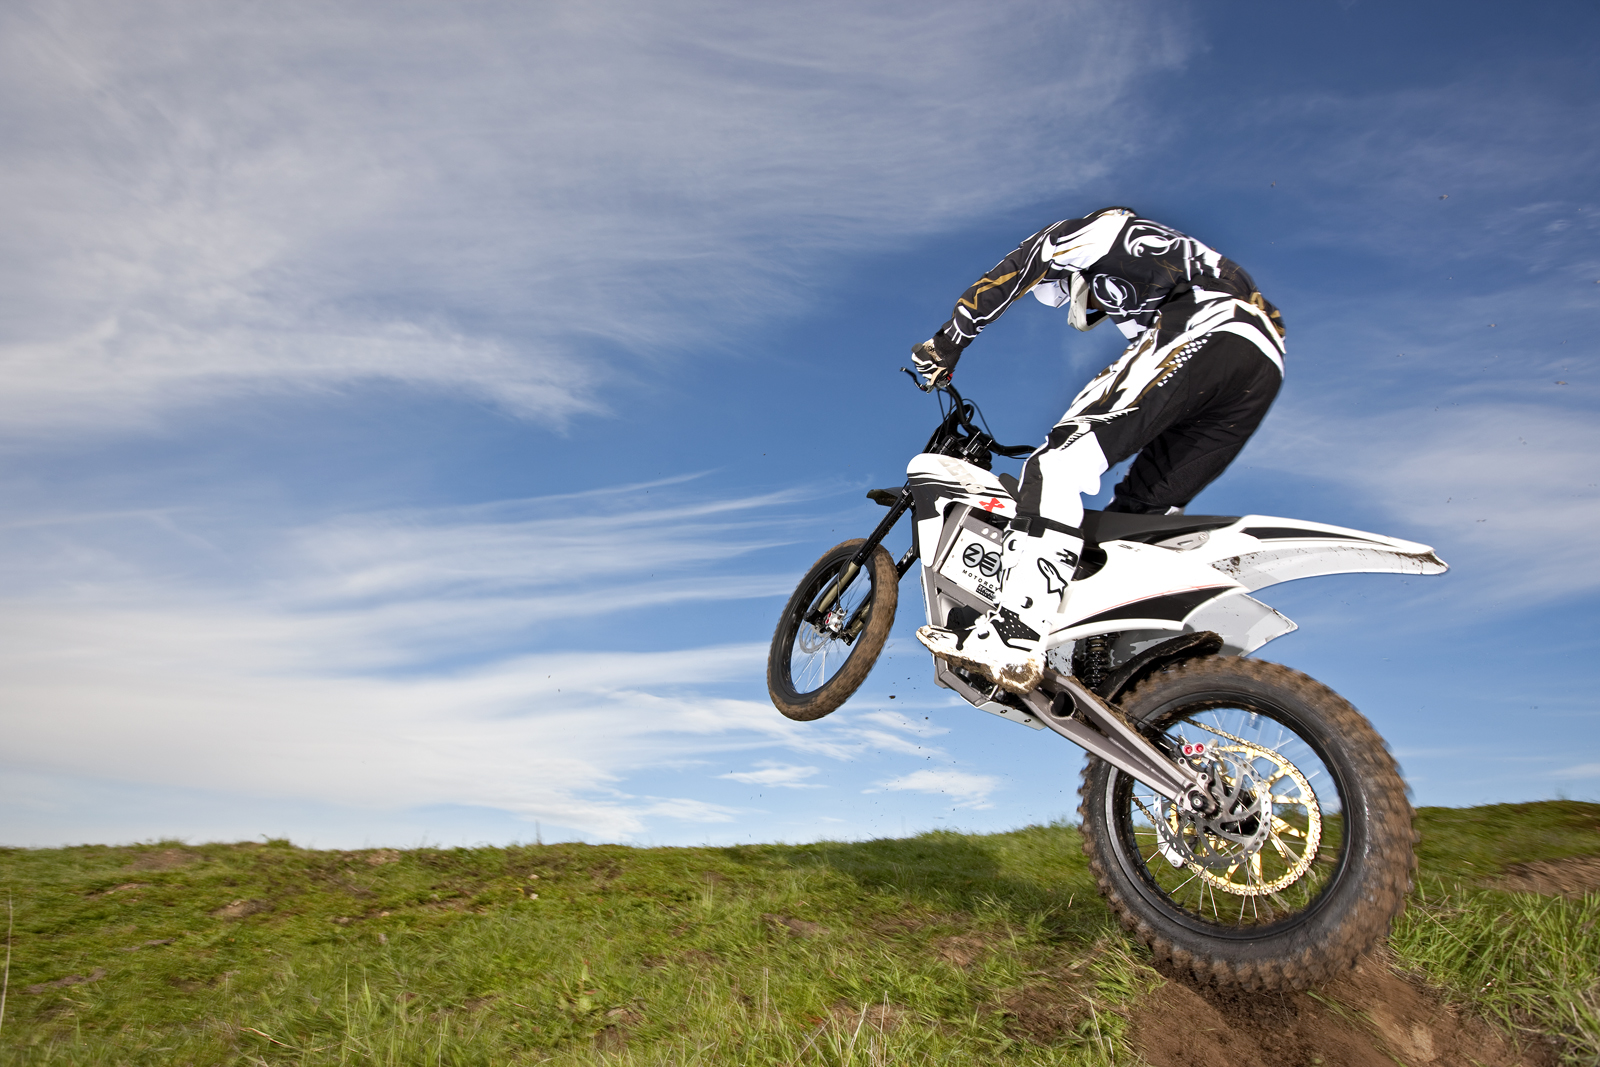 2010 Zero X Electric Motorcycle: Zaca Station - Jump Onto Grass